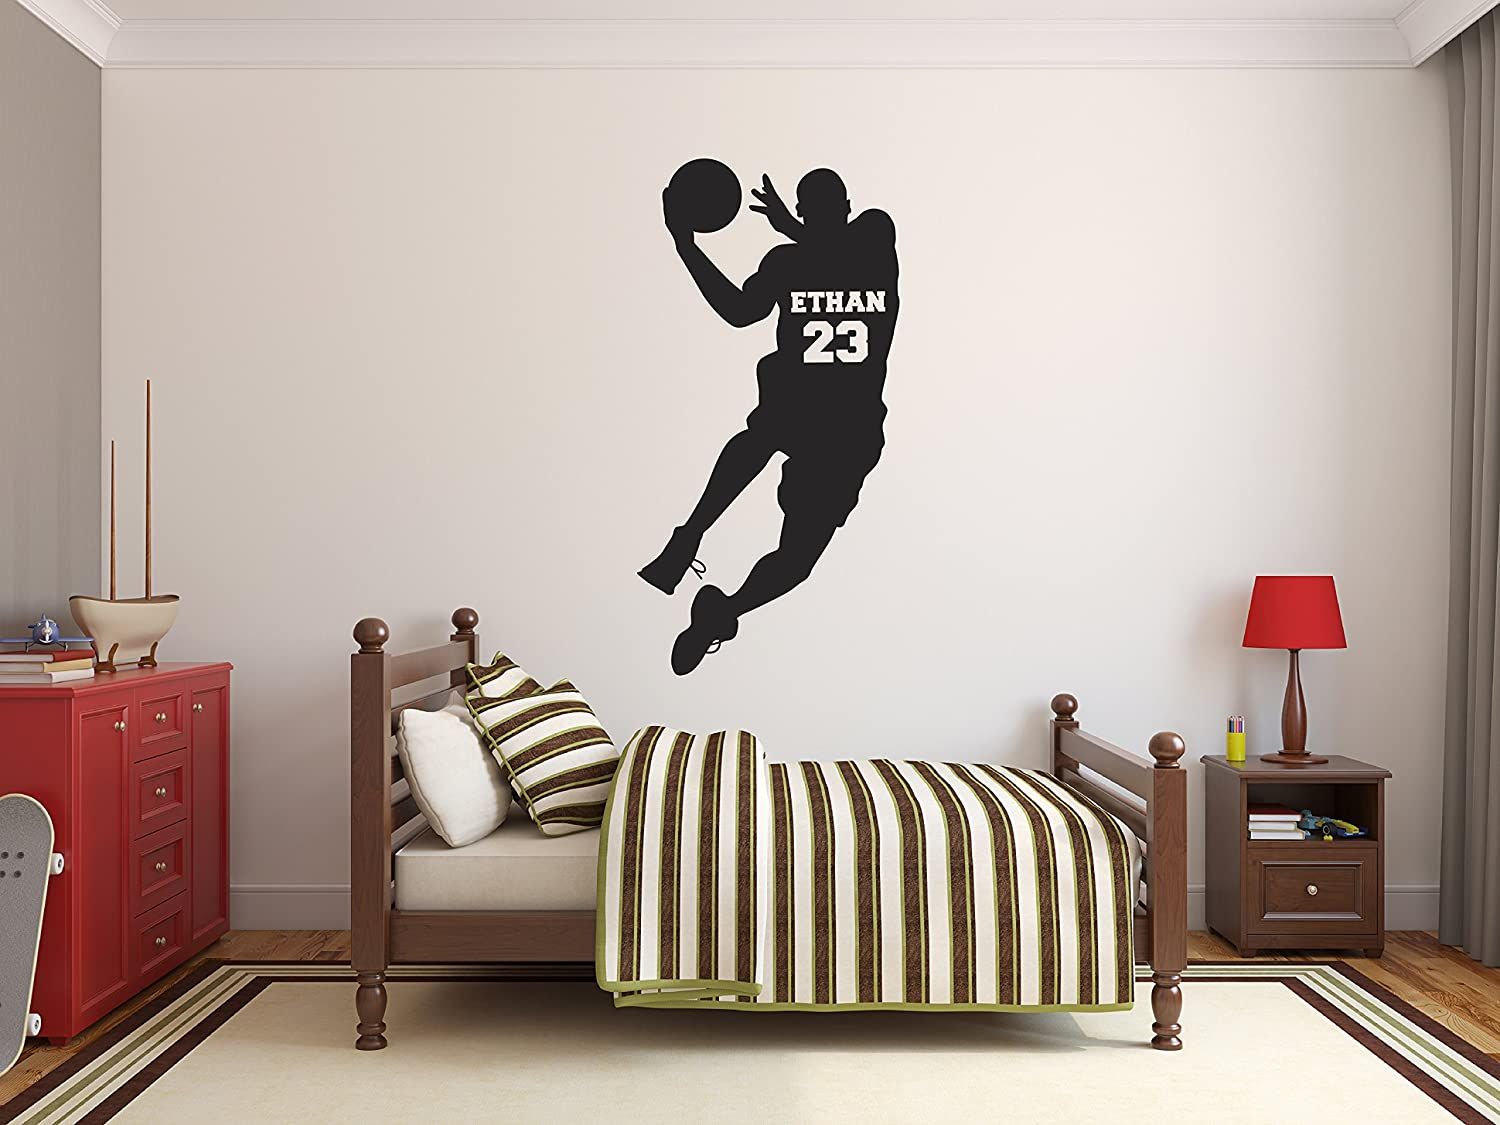 Personalized Basketball Name Wall Decals - Boy Kids Room Decor - Nursery Wall Decals - Player Wall Decor Sticker